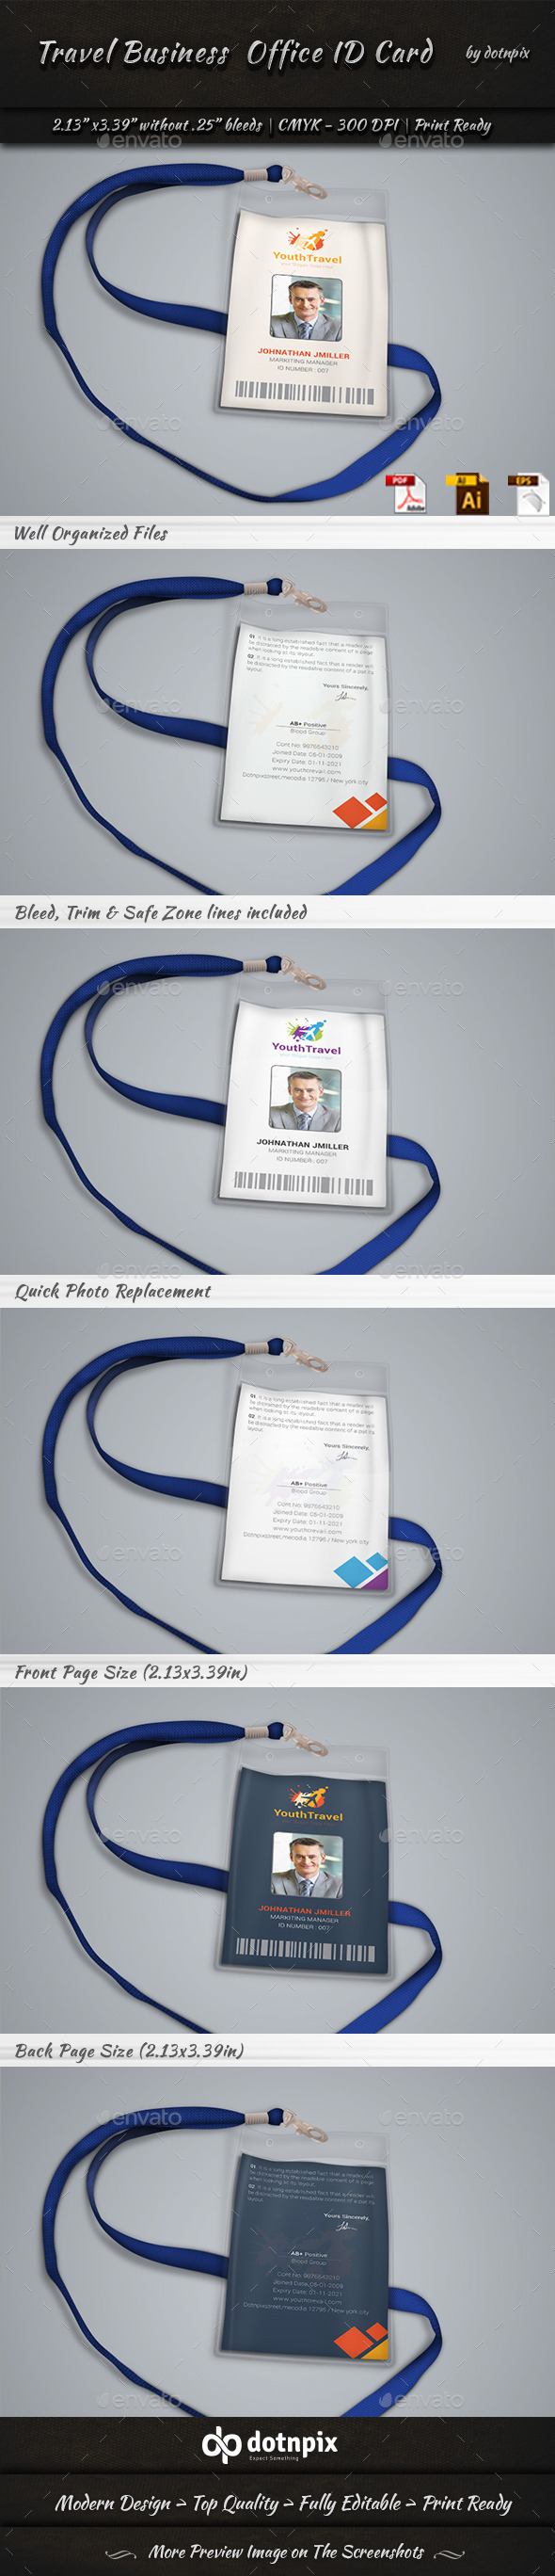 Travel Business Office ID Card by dotnpix | GraphicRiver